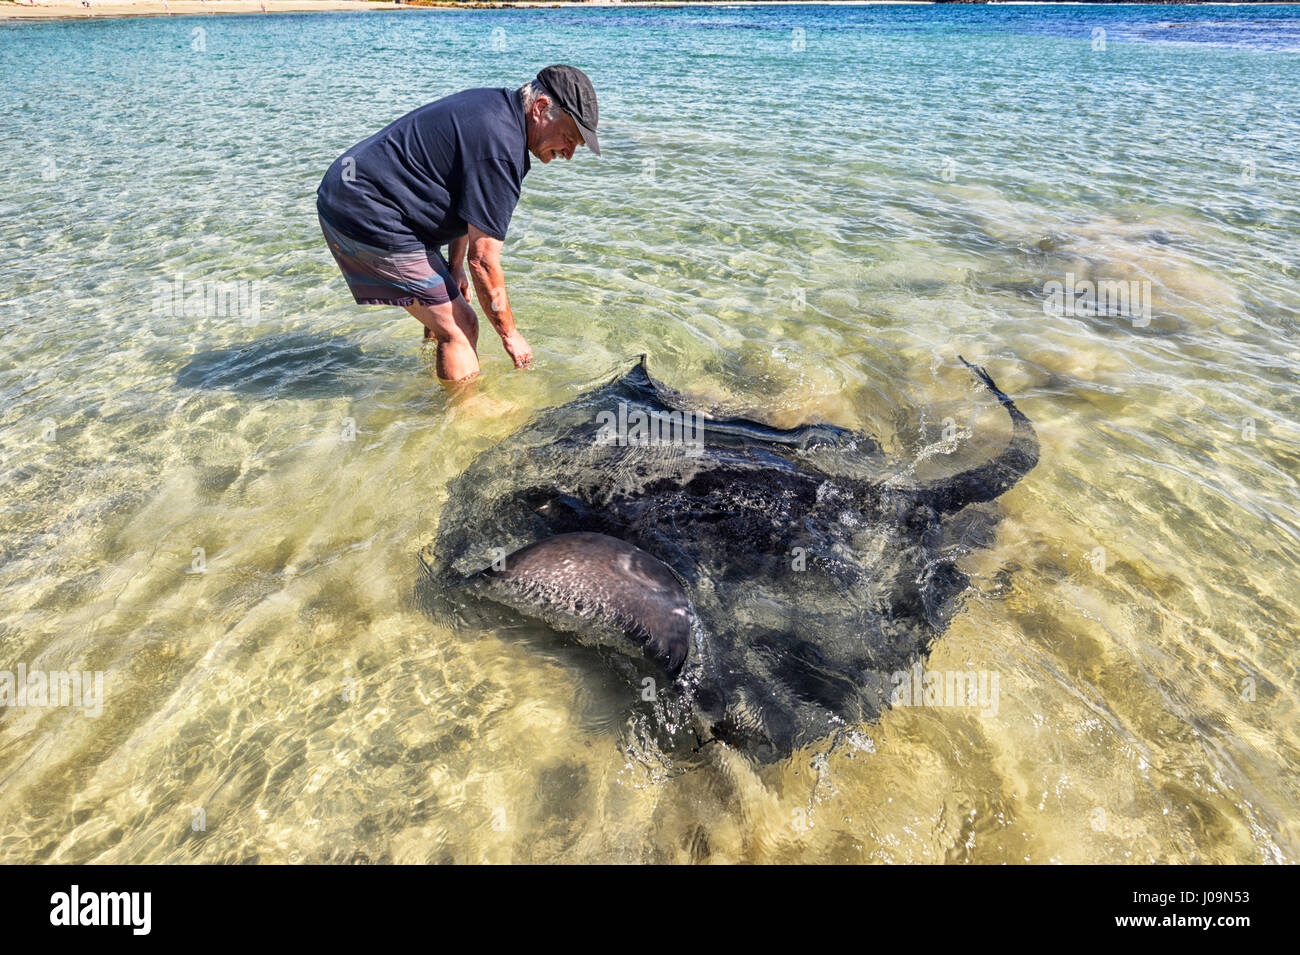 male-feeding-a-giant-stingray-at-washerw